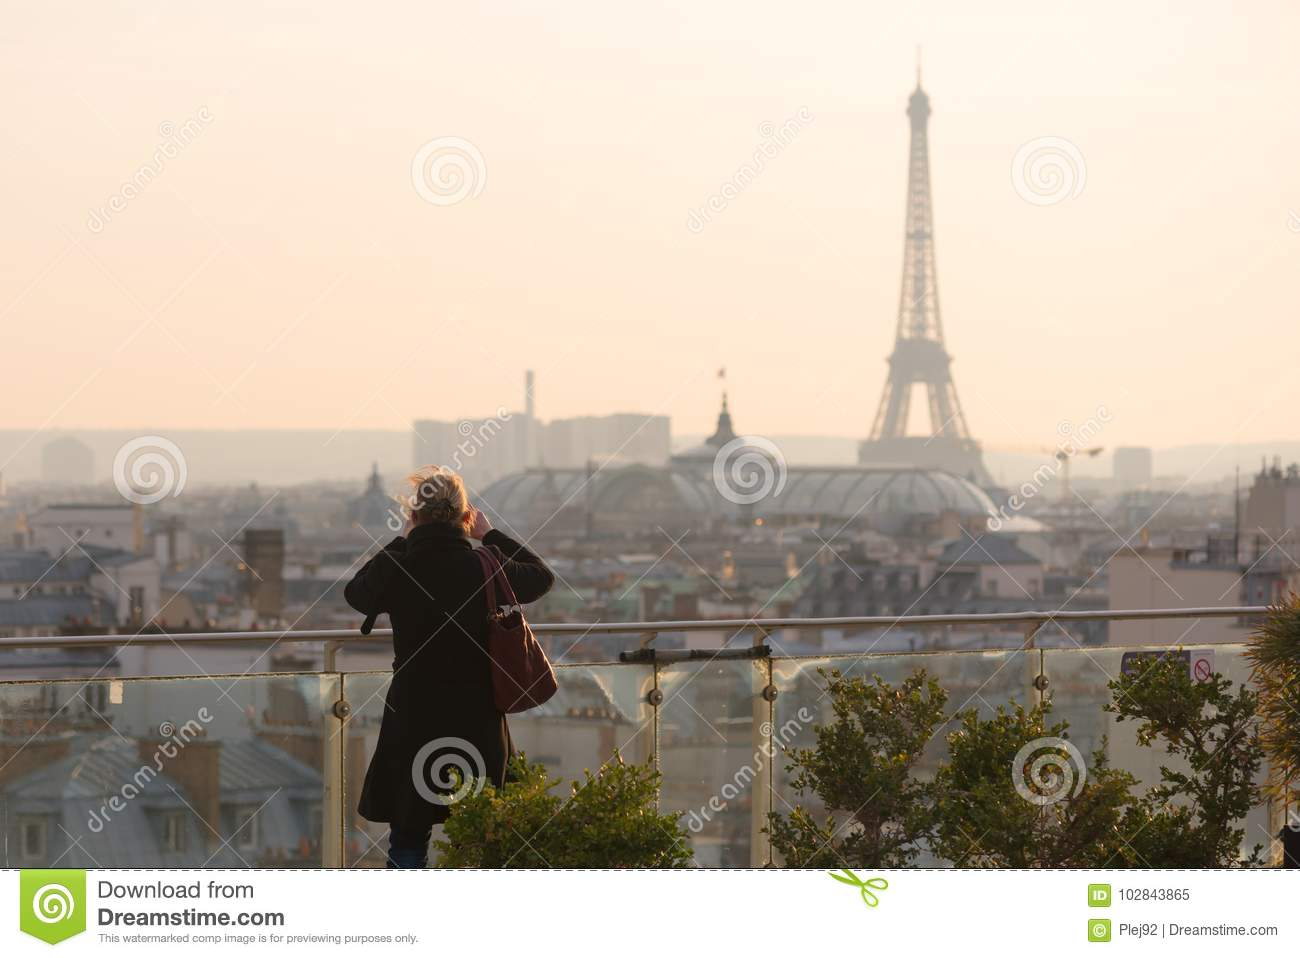 Woman taking the Eiffel tower in photo